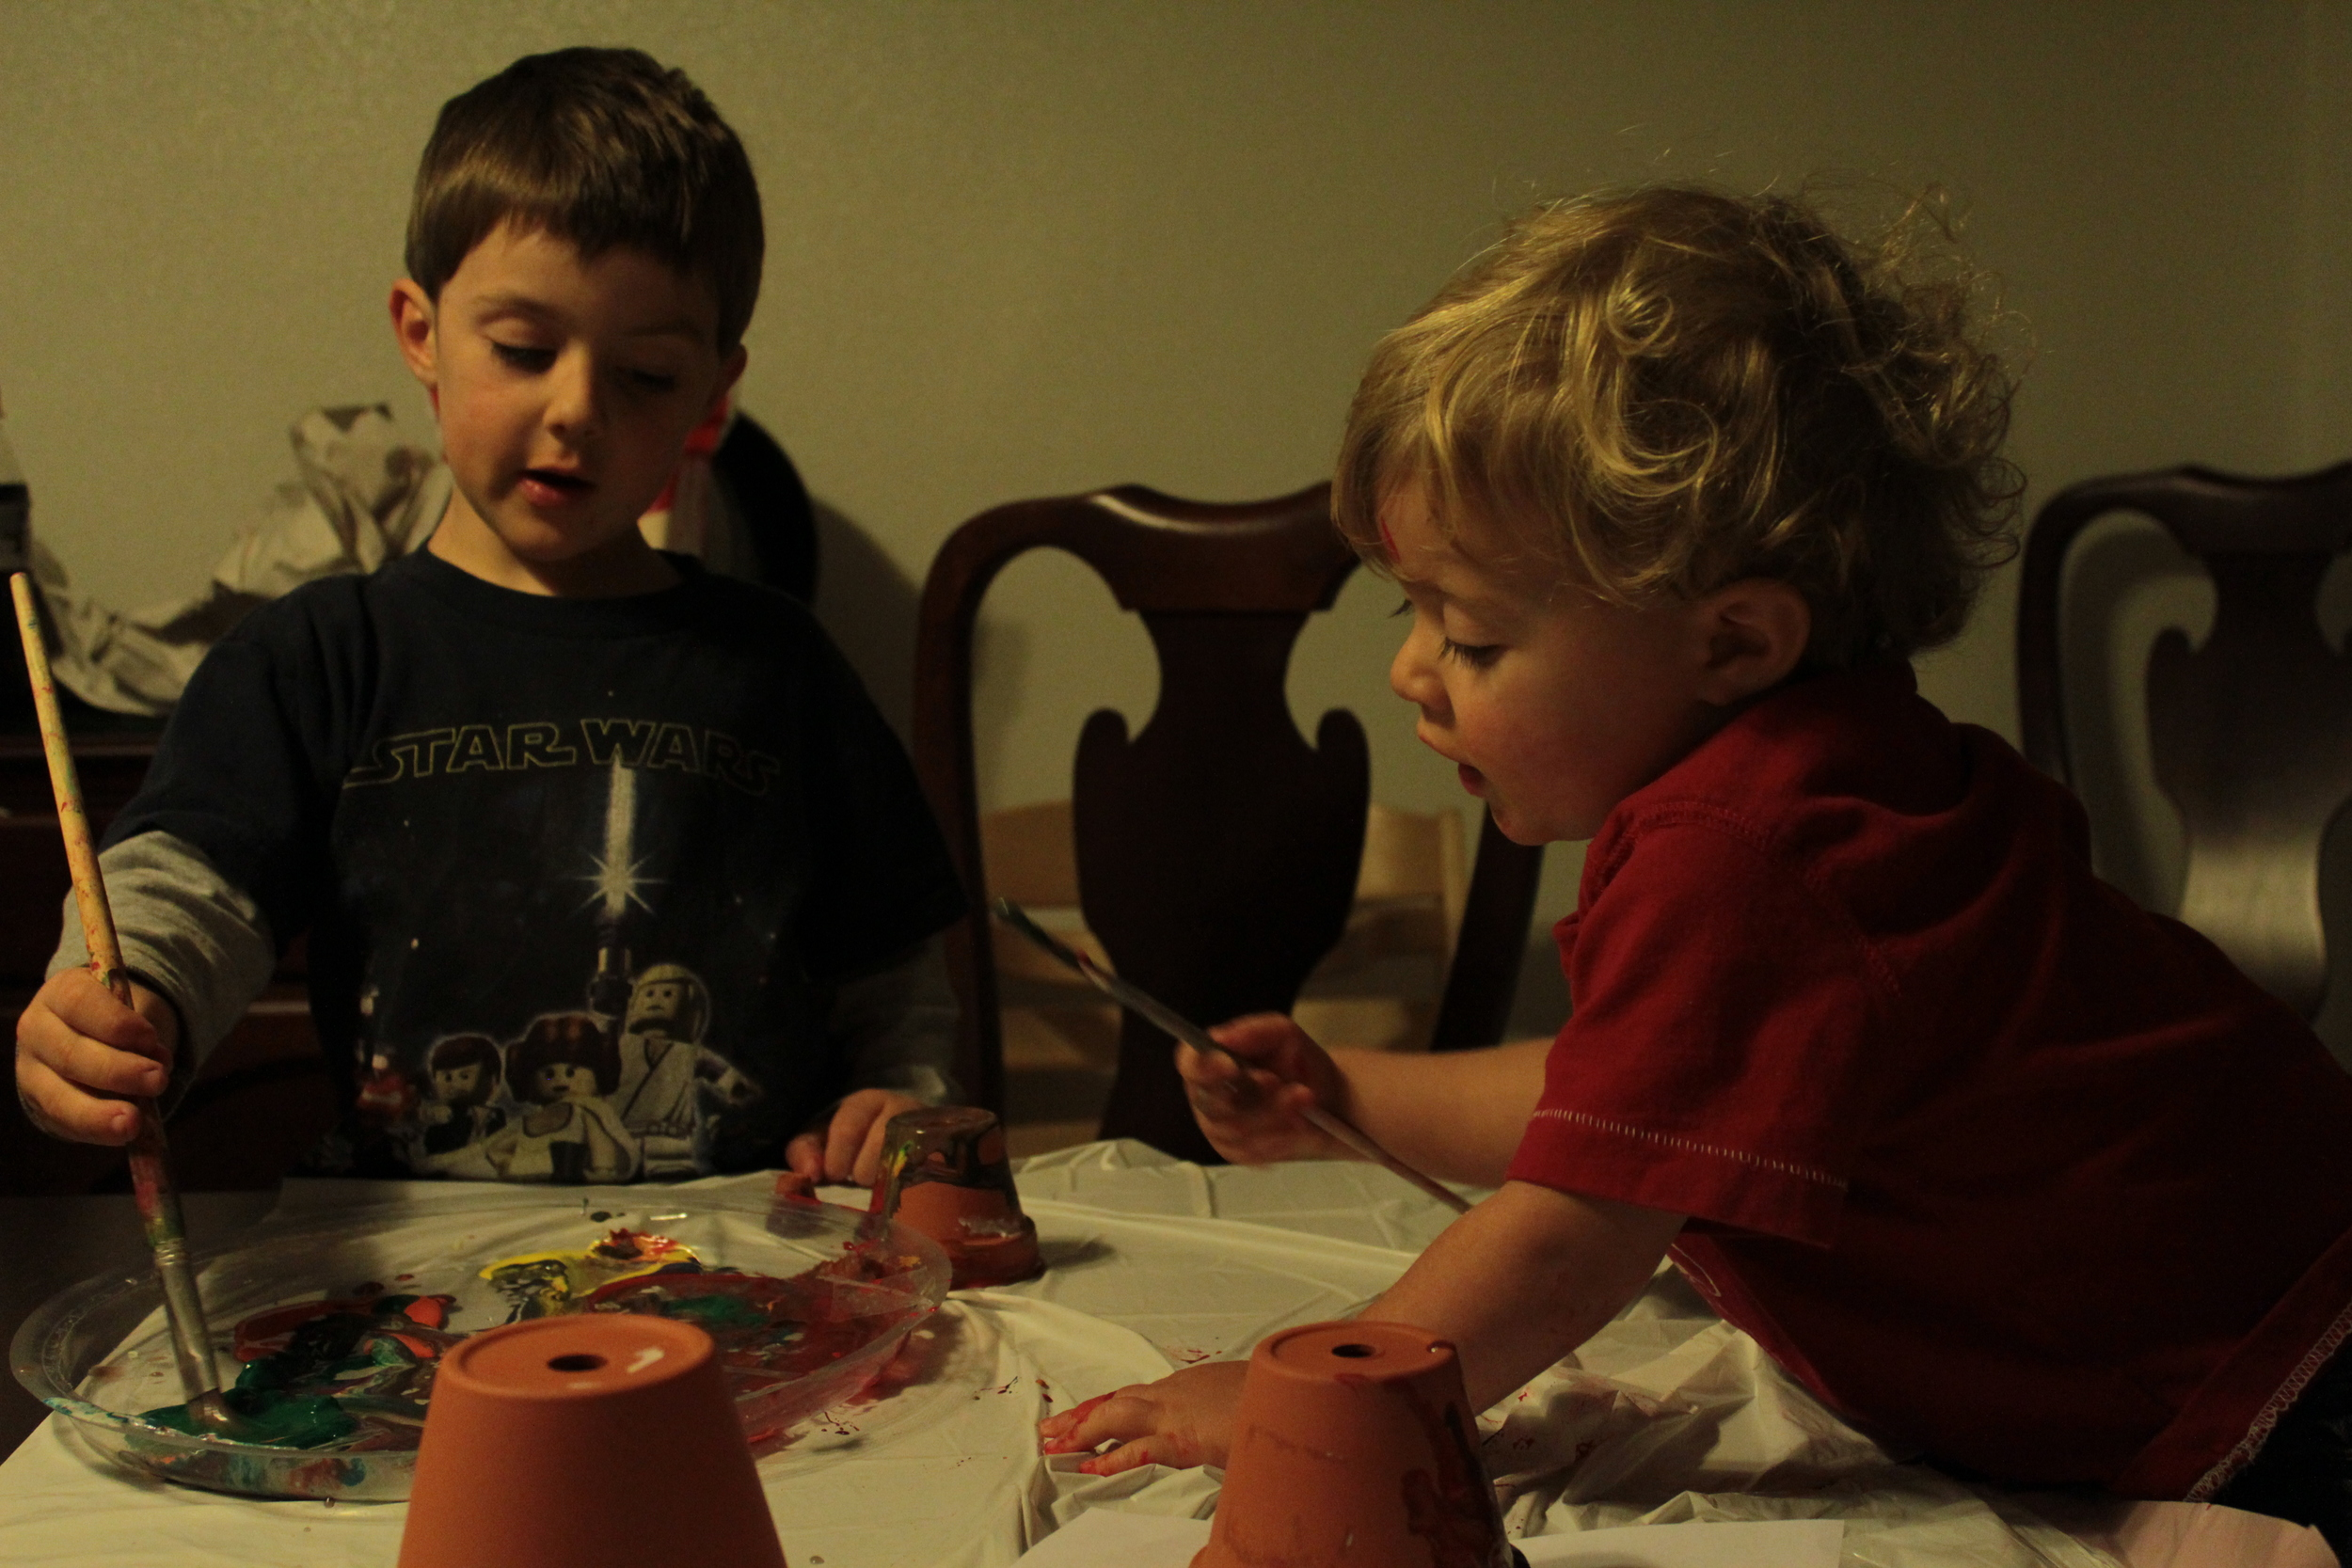 The little guys getting artsy.